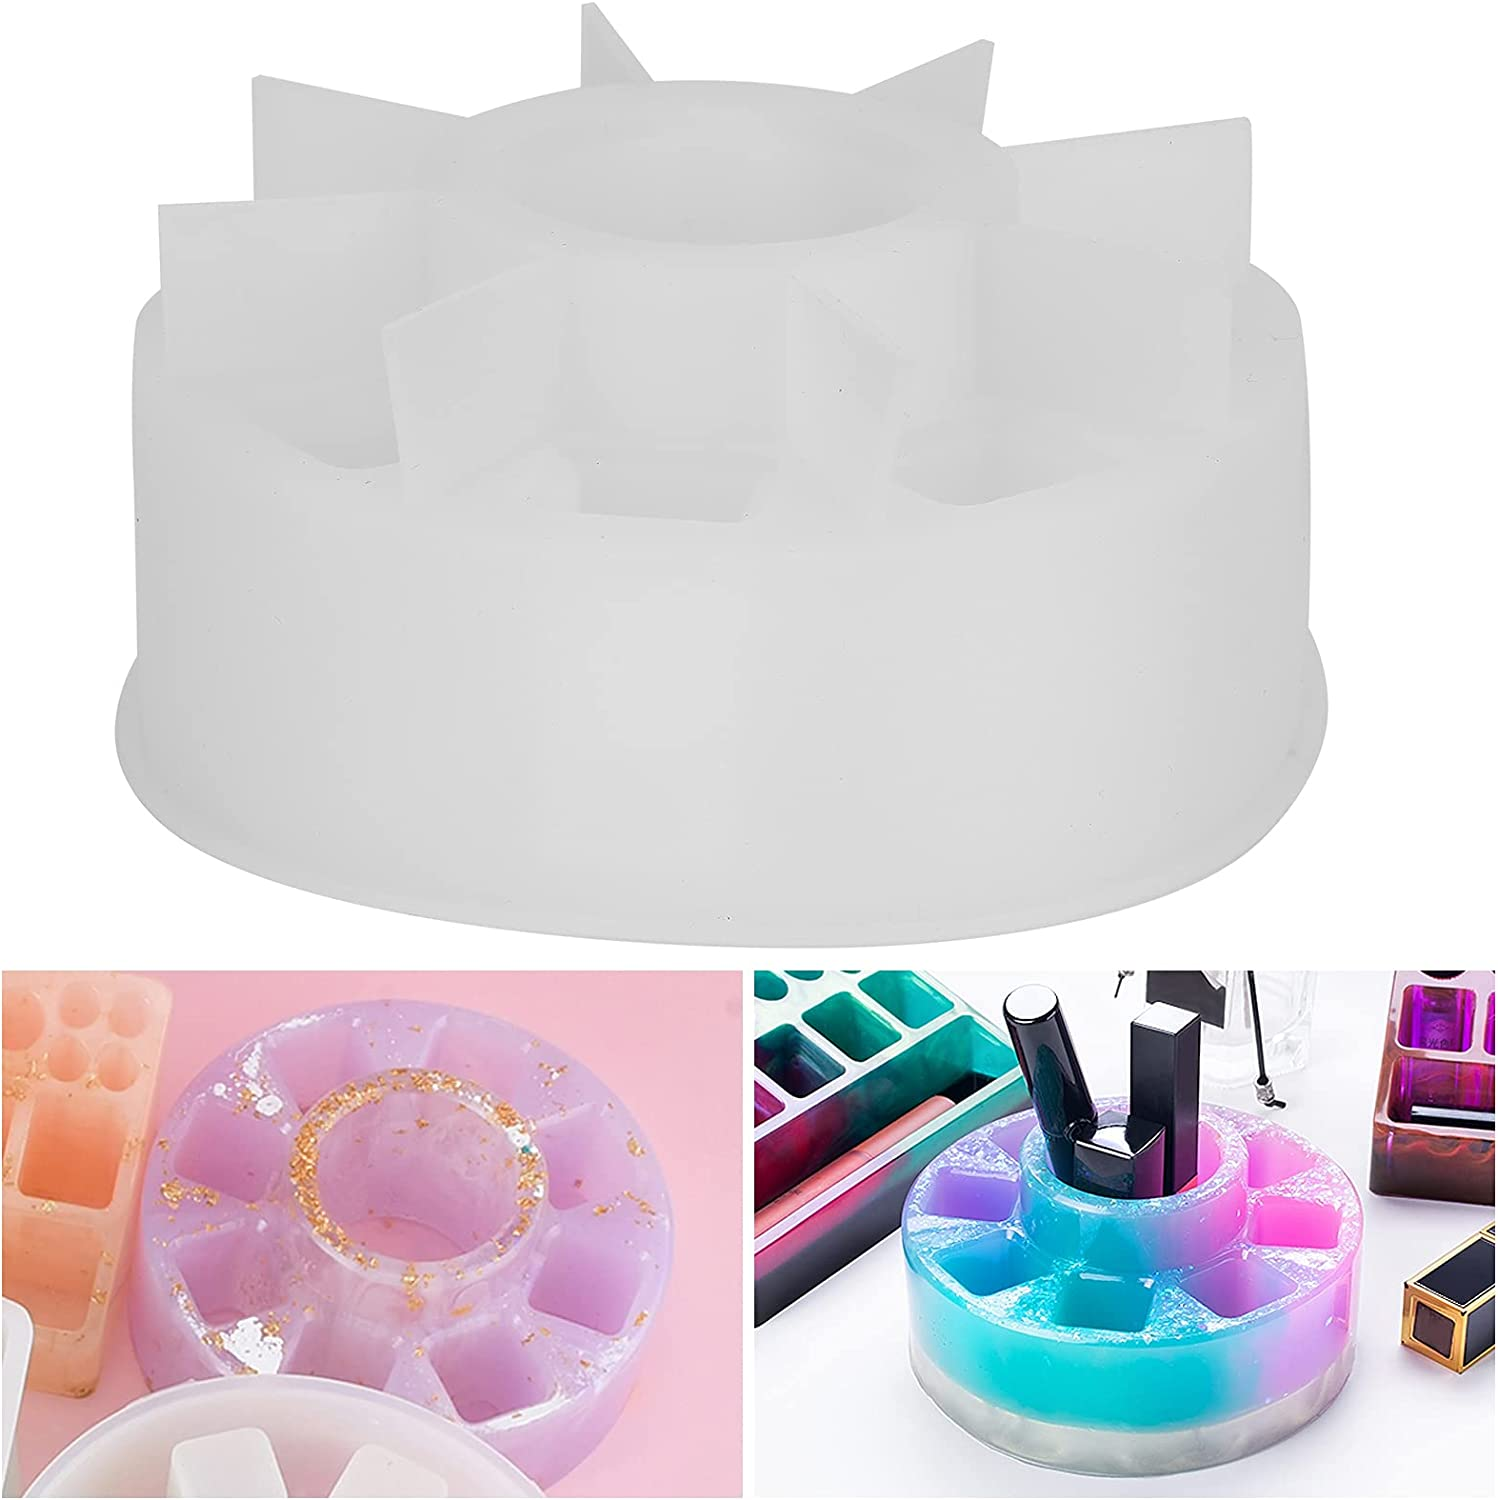 Safety and trust 01 Lipstick Box Holder Same day shipping Smooth Reusable Home for P